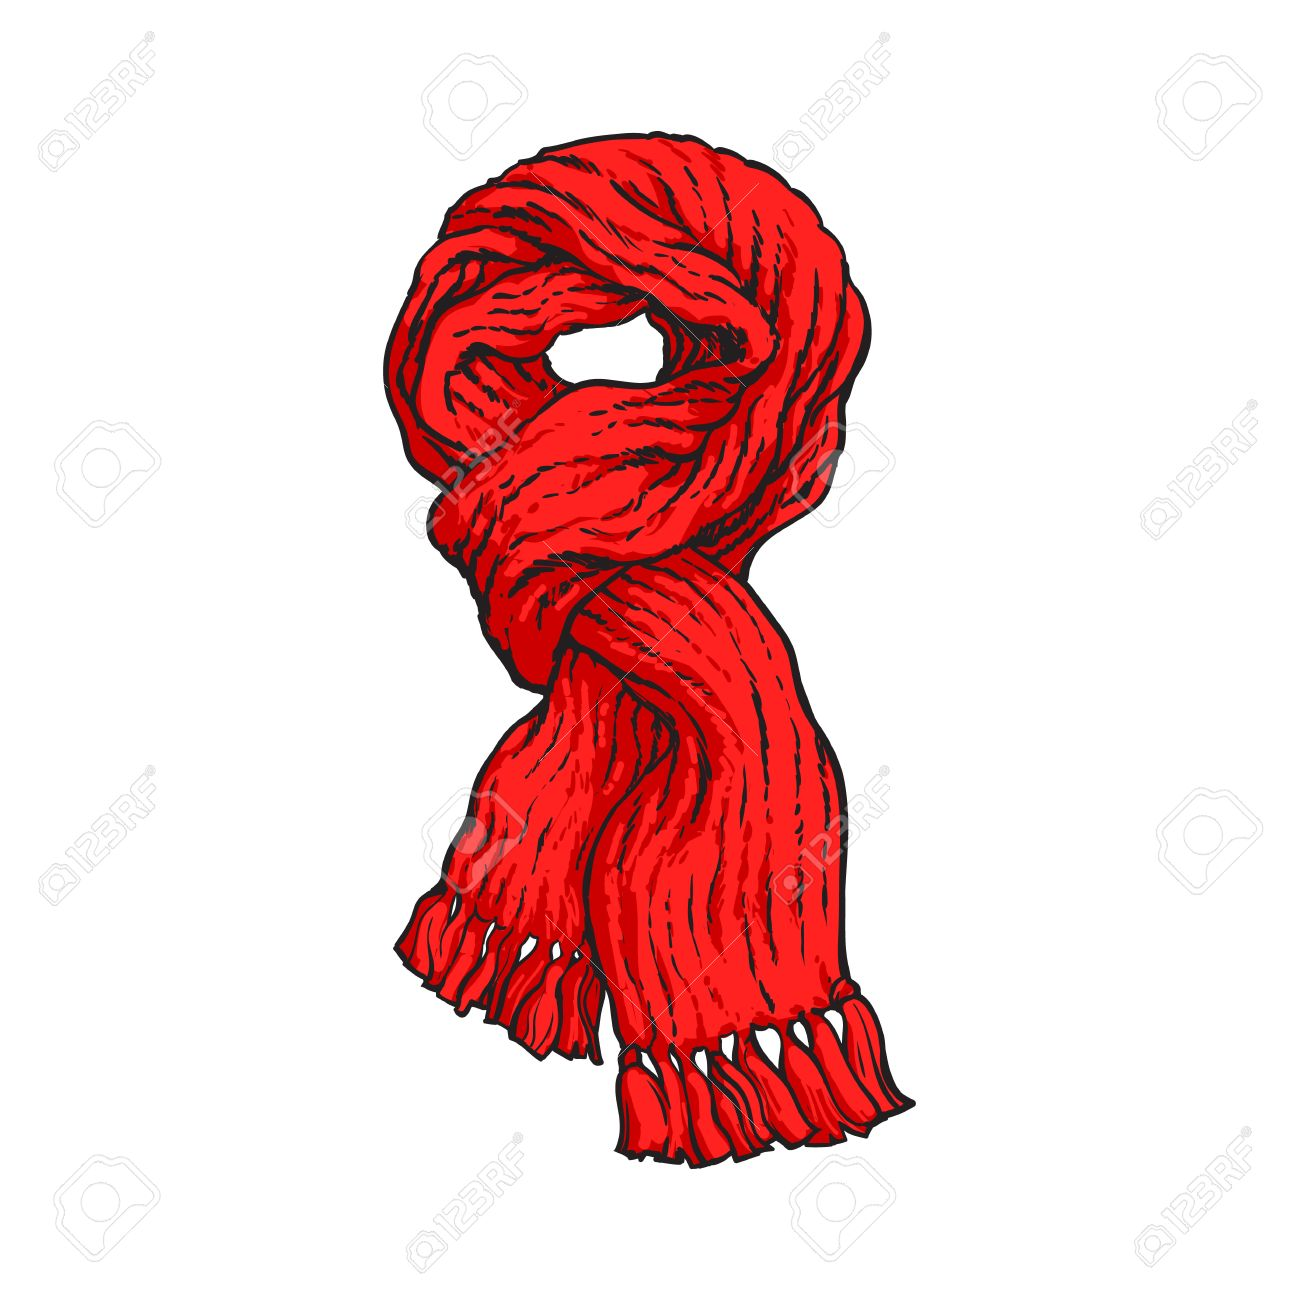 Bright Red Slip Knotted Winter Knitted Scarf With Tassels Sketch Royalty Free Cliparts Vectors And Stock Illustration Image 64765594